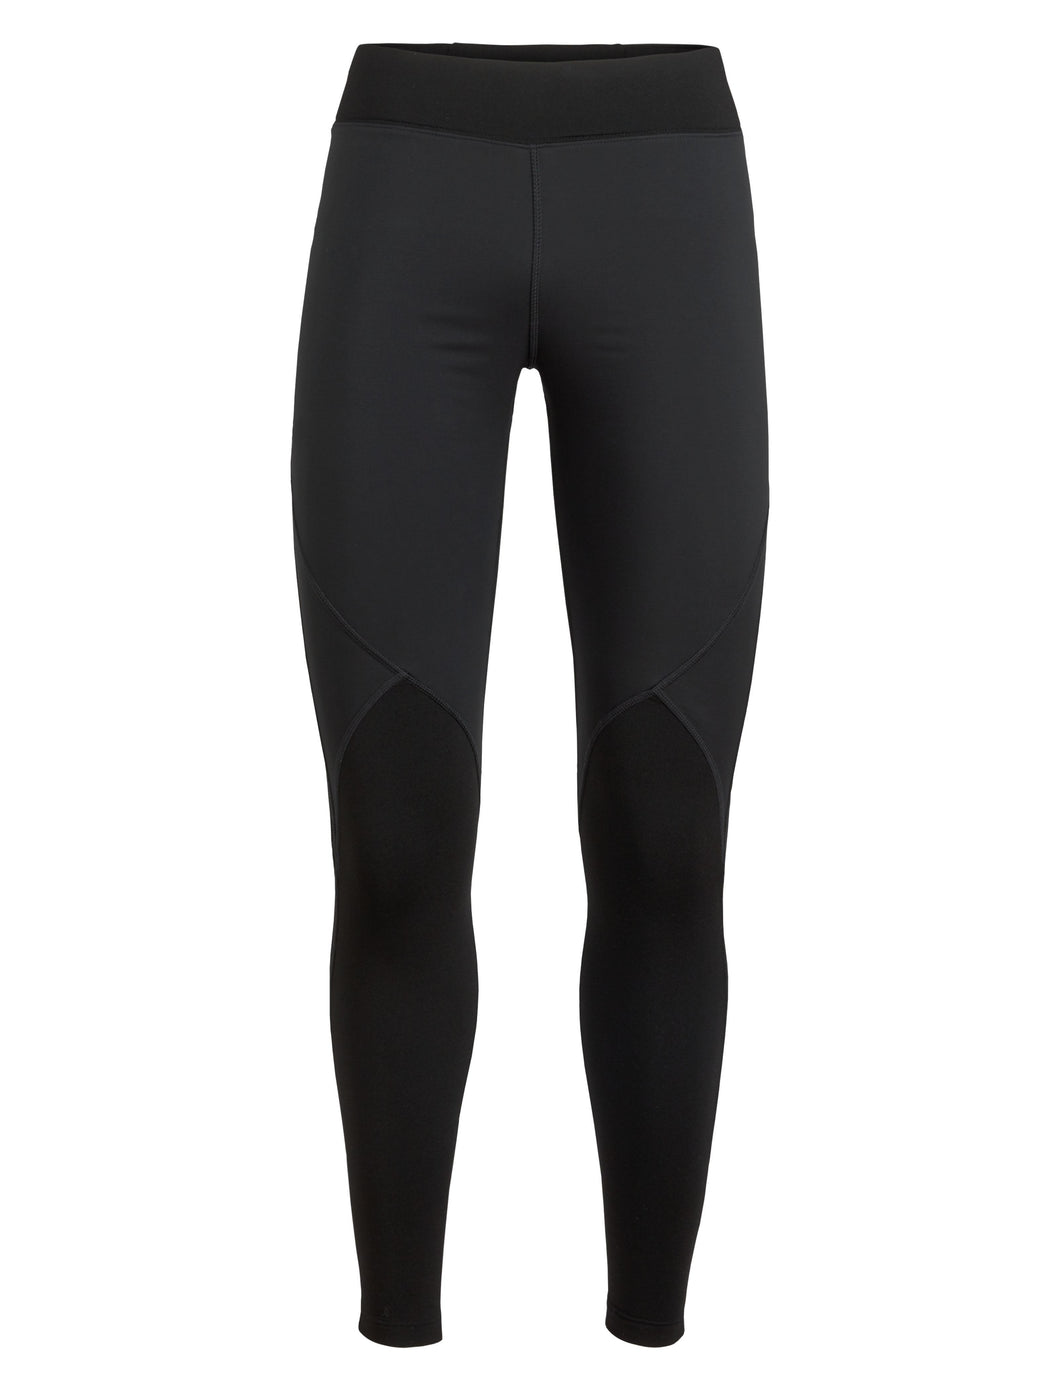 Icebreaker Merino Women Tech Trainer Hybrid Leggings Tights - Winter Running Training Outdoor Cold Weather